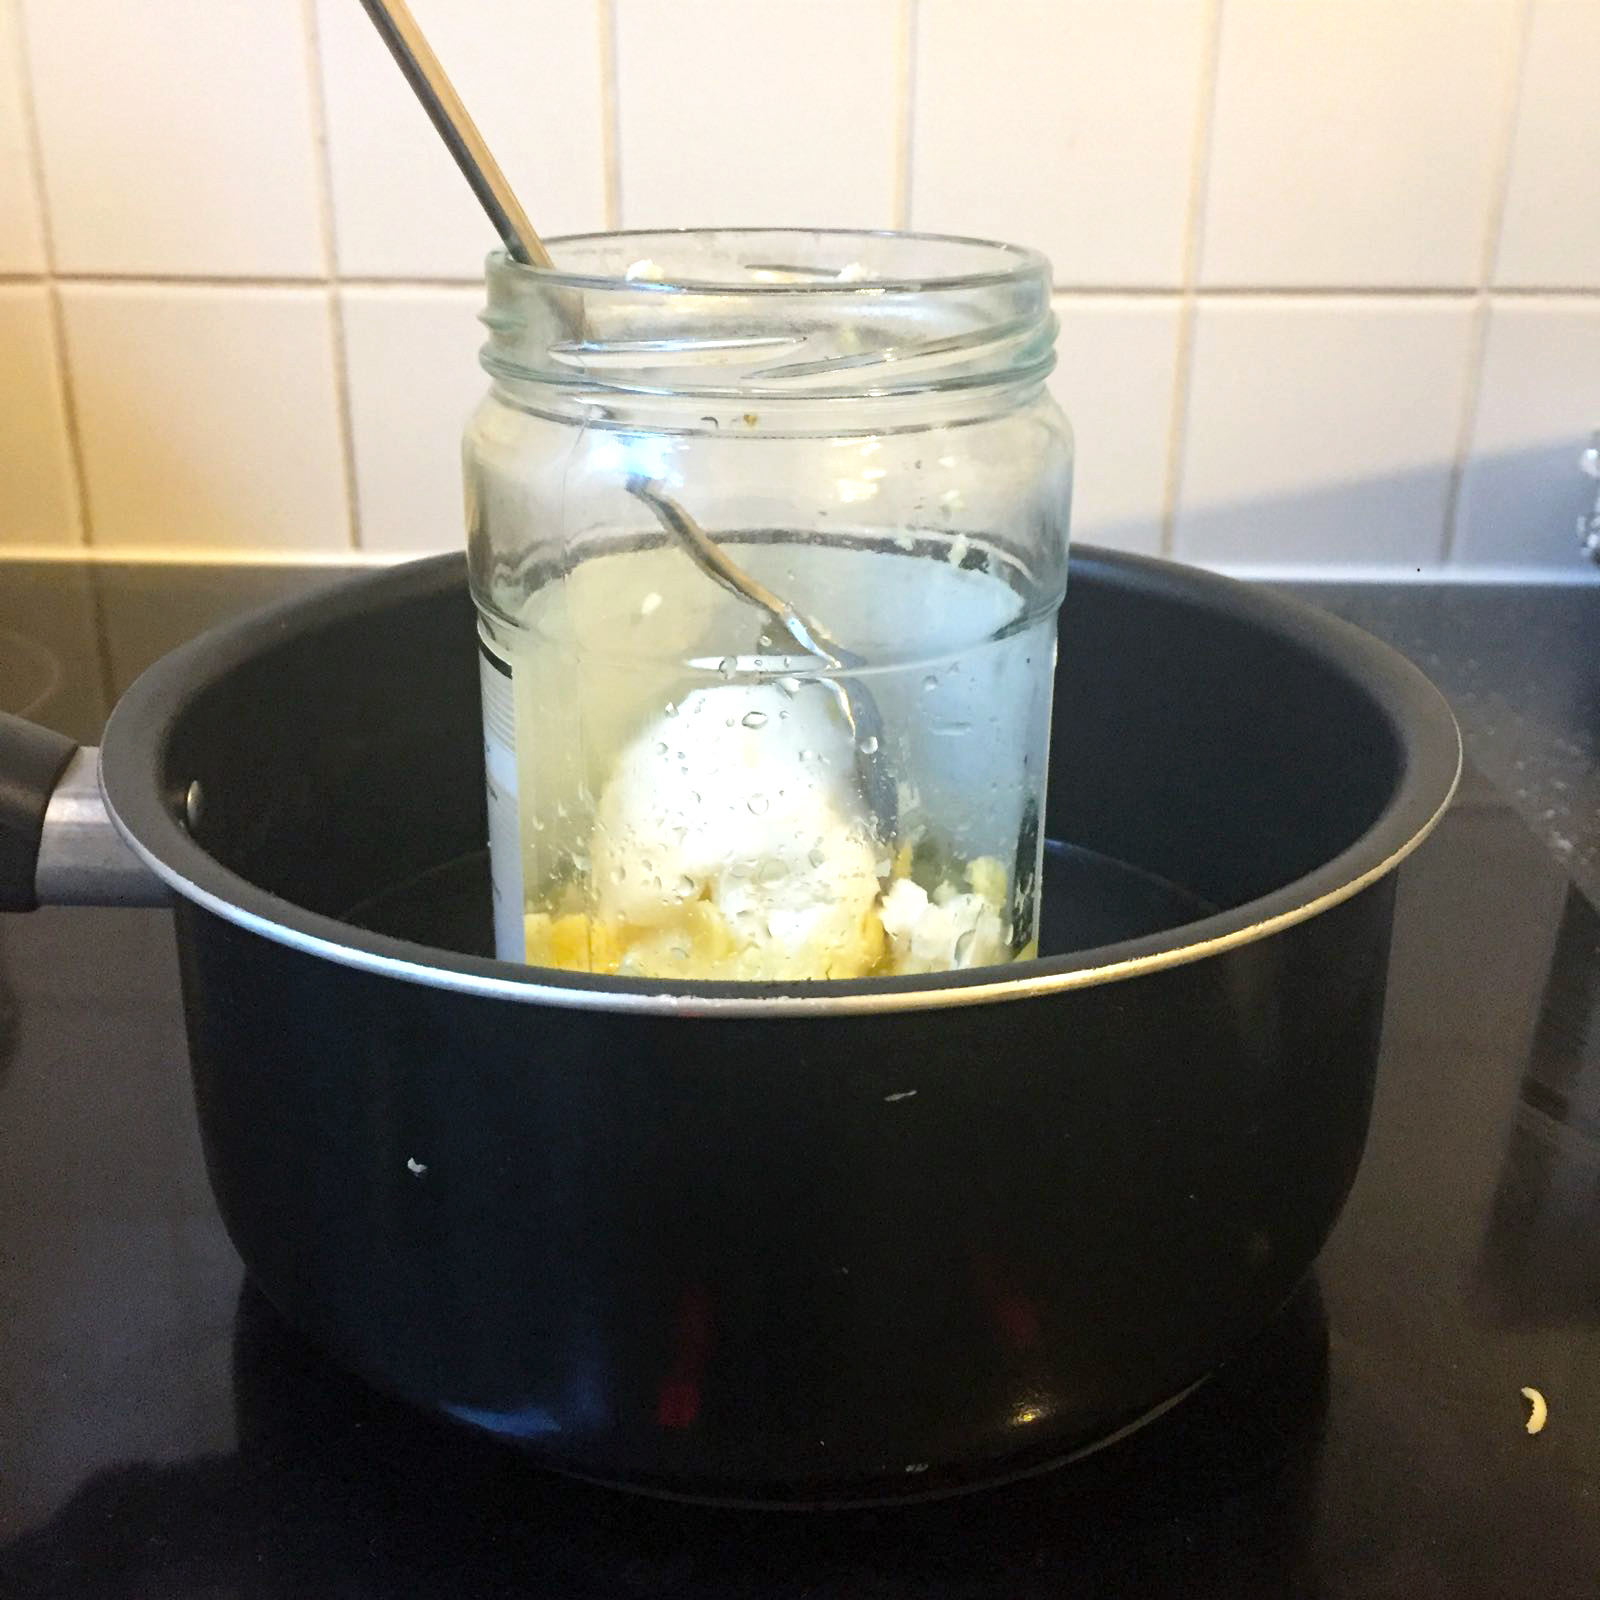 Melting the ingredients au bain-marie